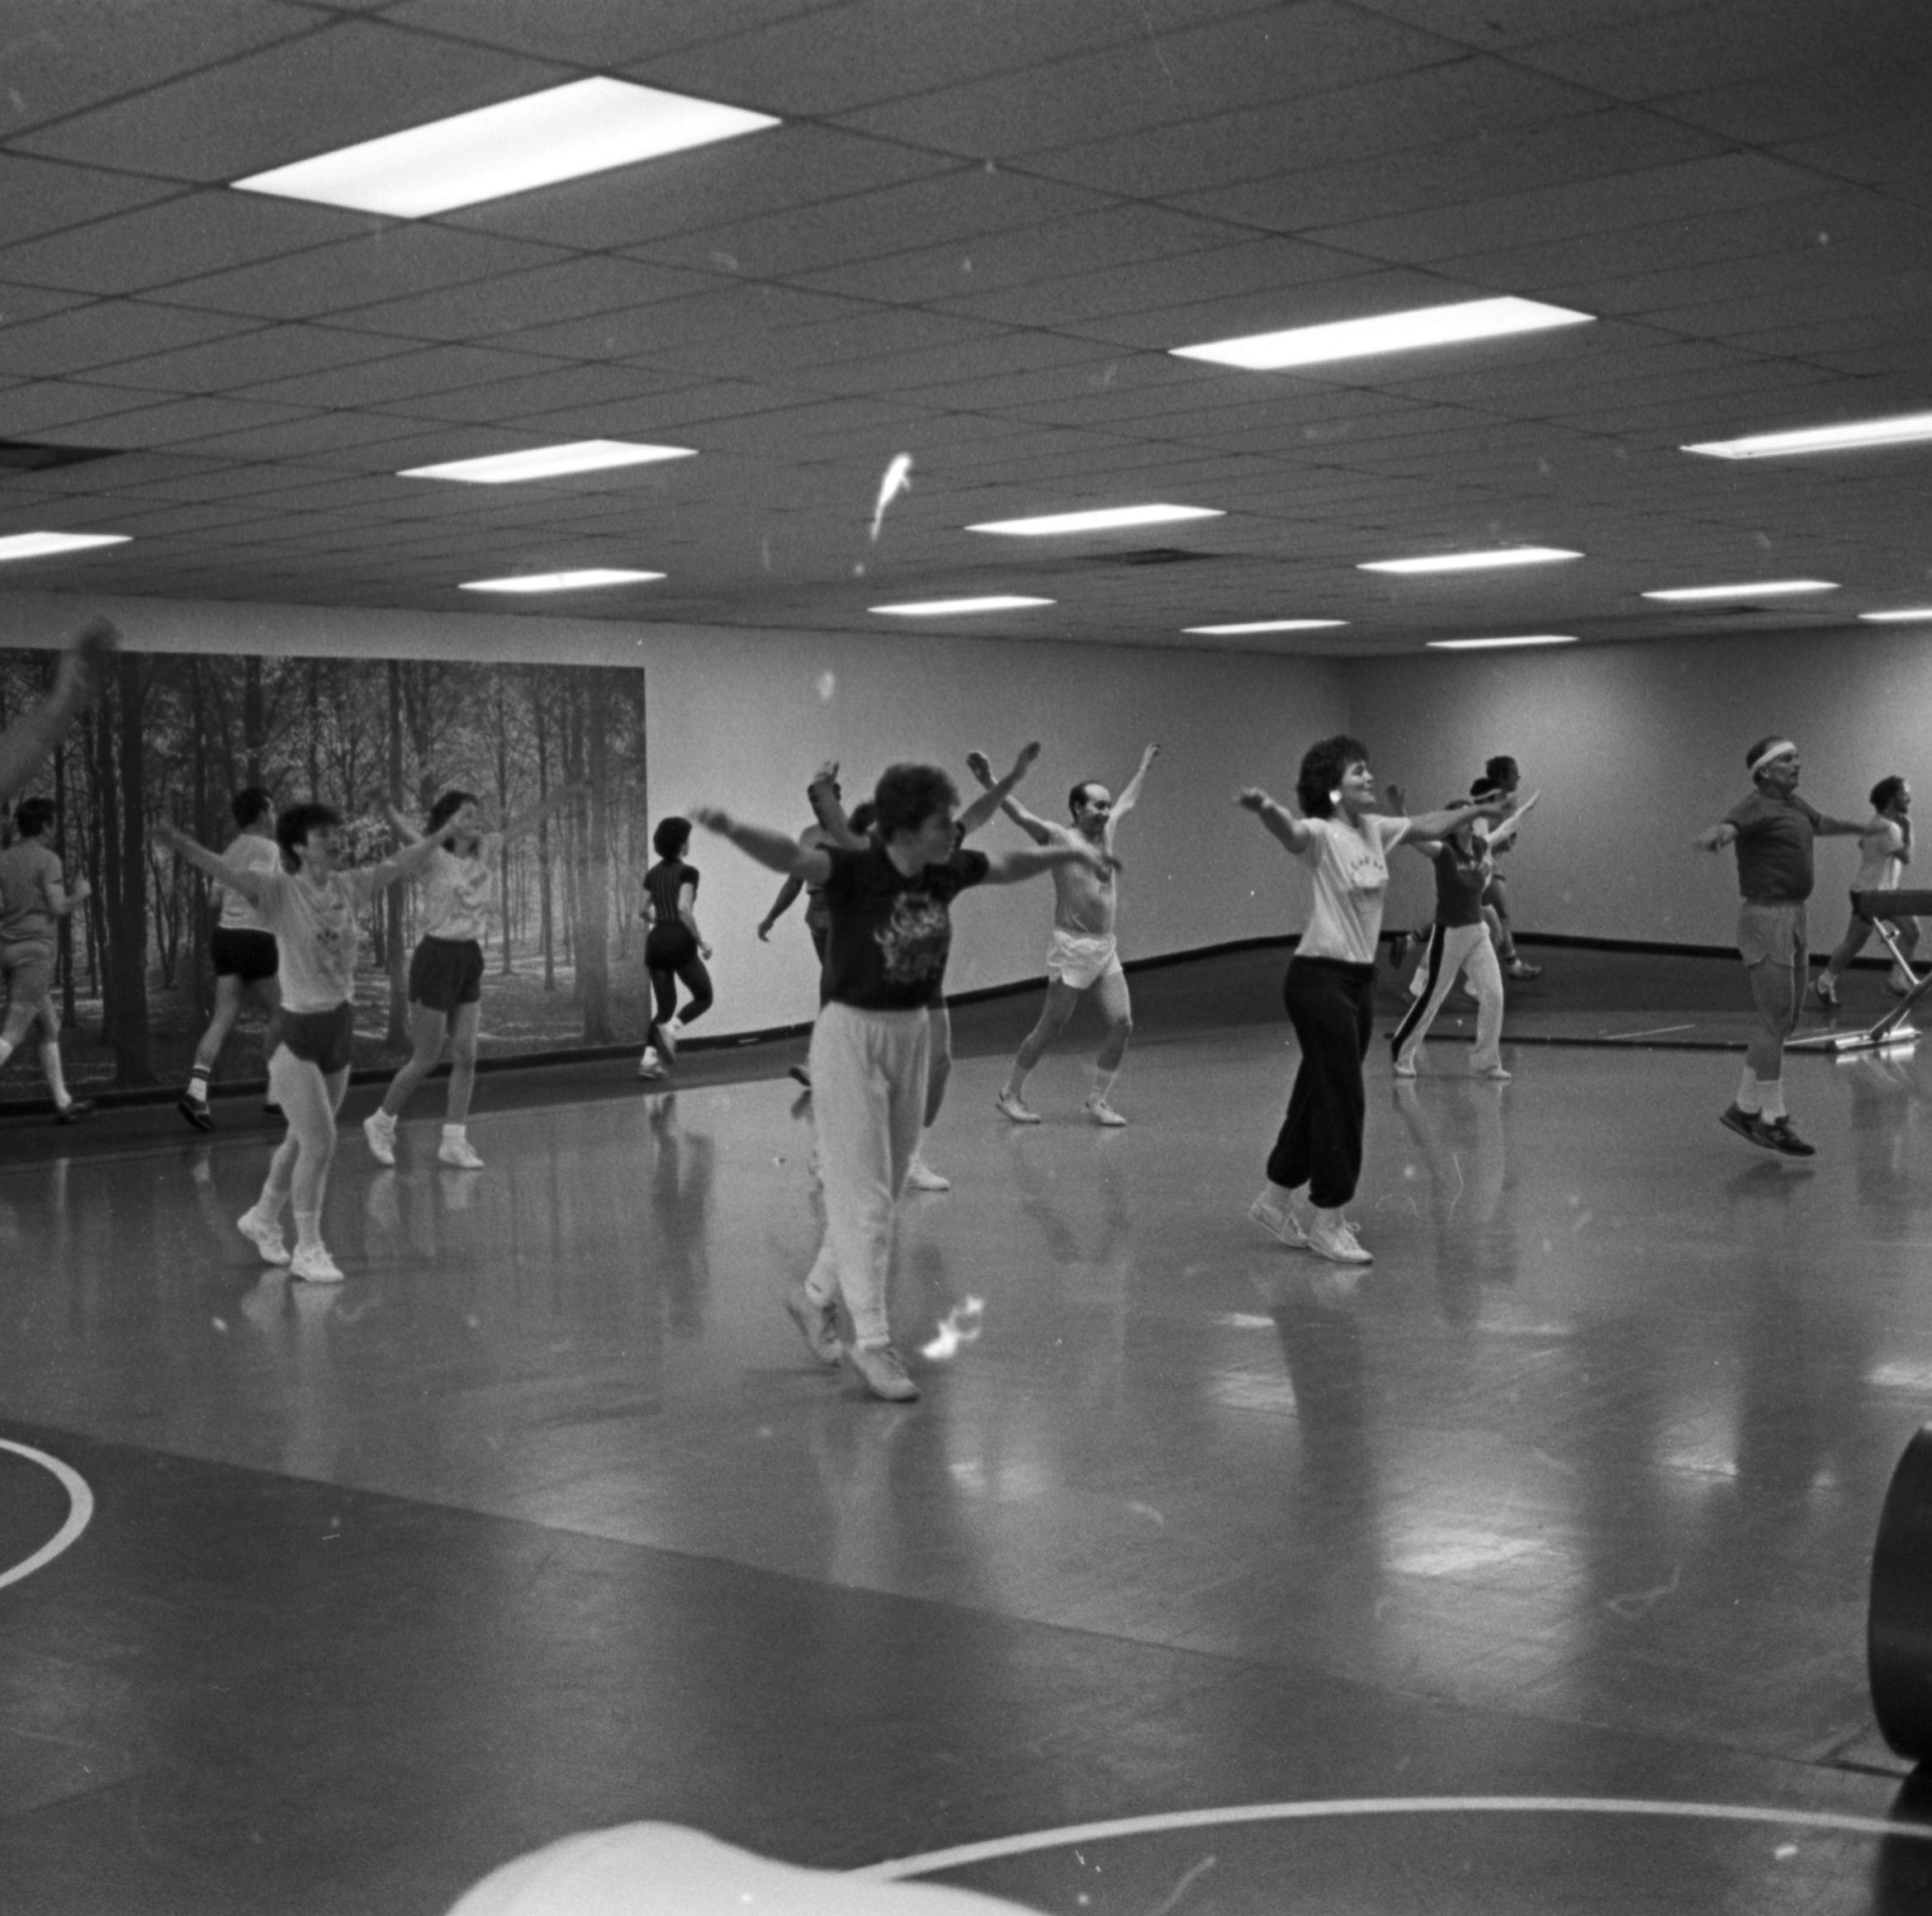 The old Lansing YMCA will be demolished soon. Here's what it used to look like.